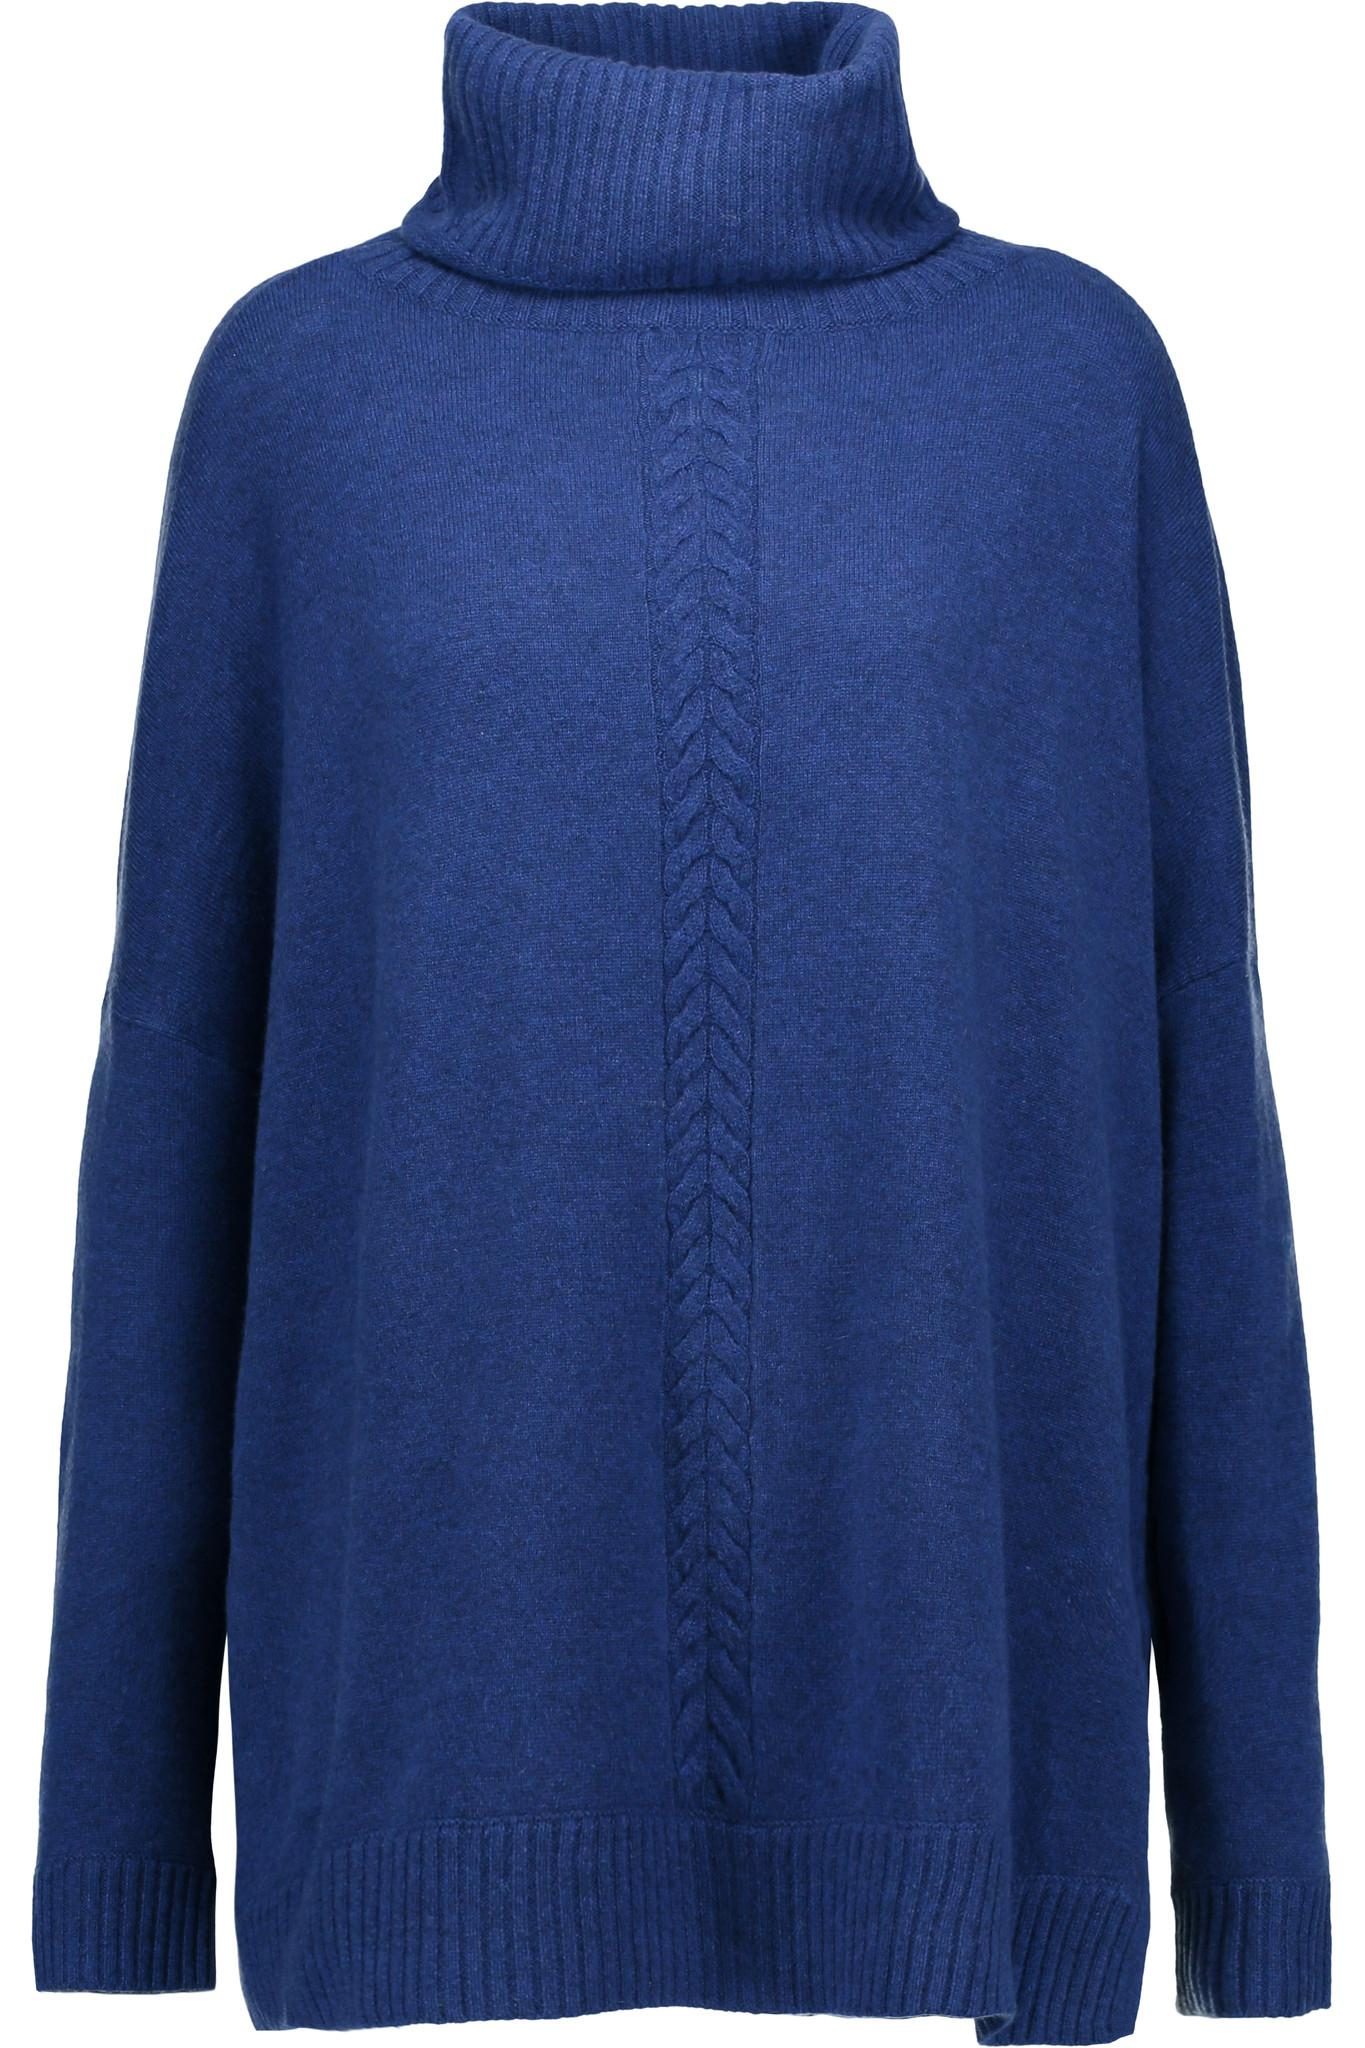 Magaschoni Cashmere Turtleneck Sweater in Blue | Lyst